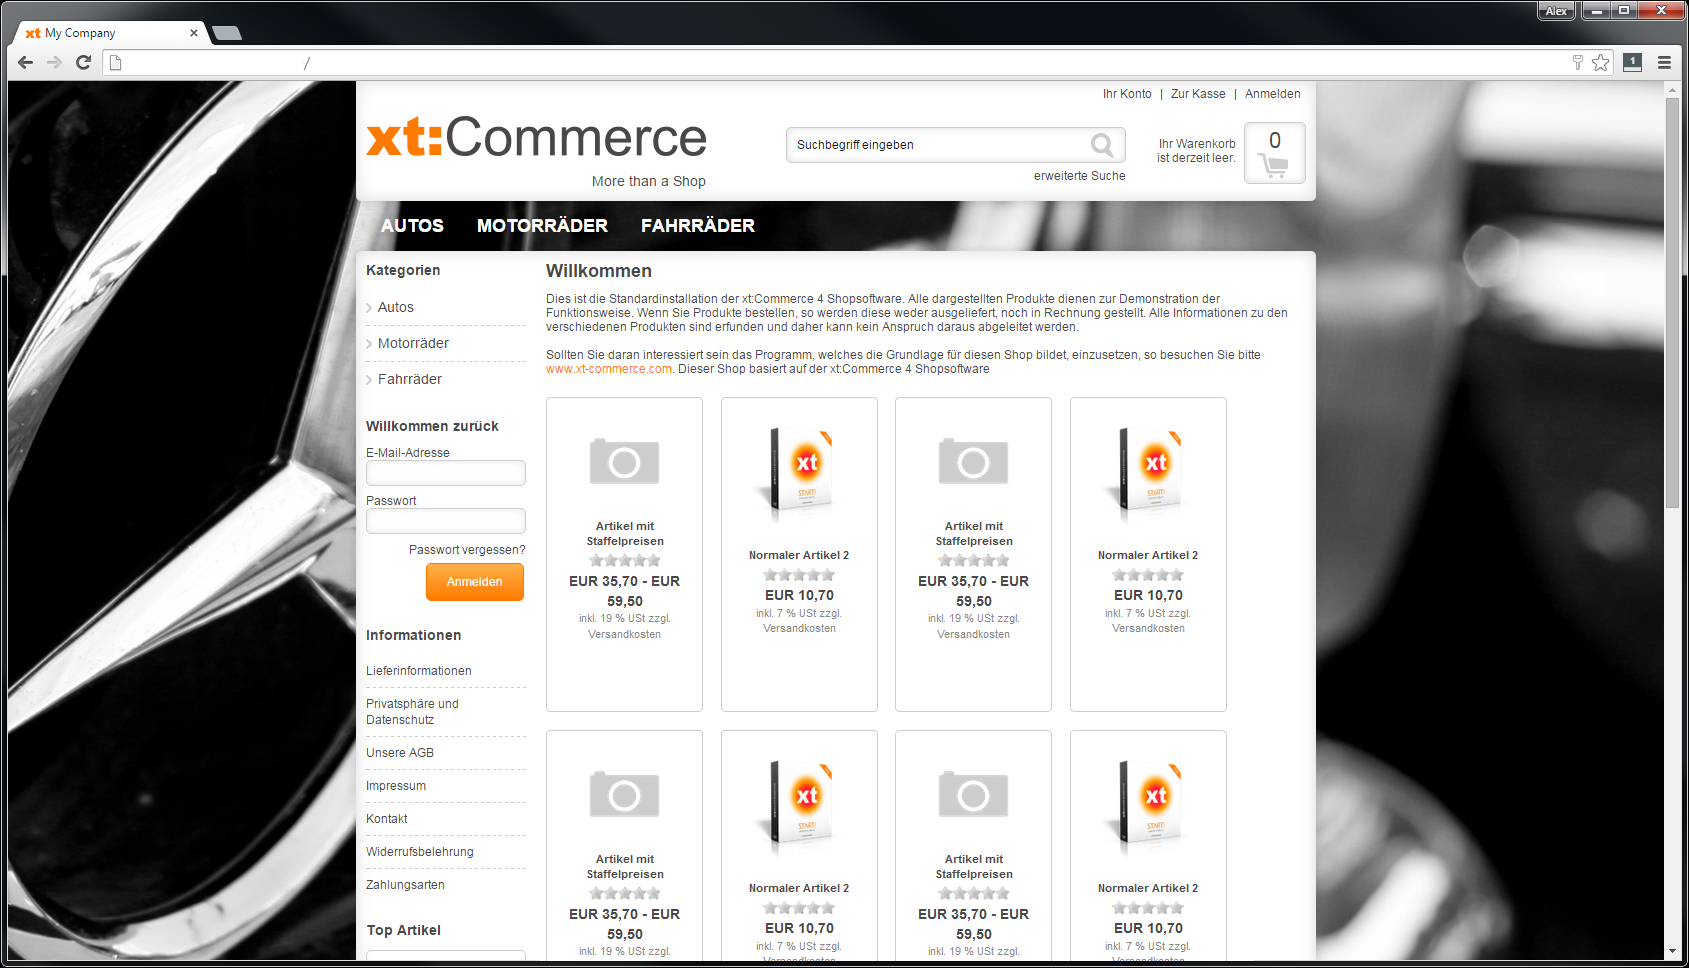 Startpage responsive background images in xt:Commerce